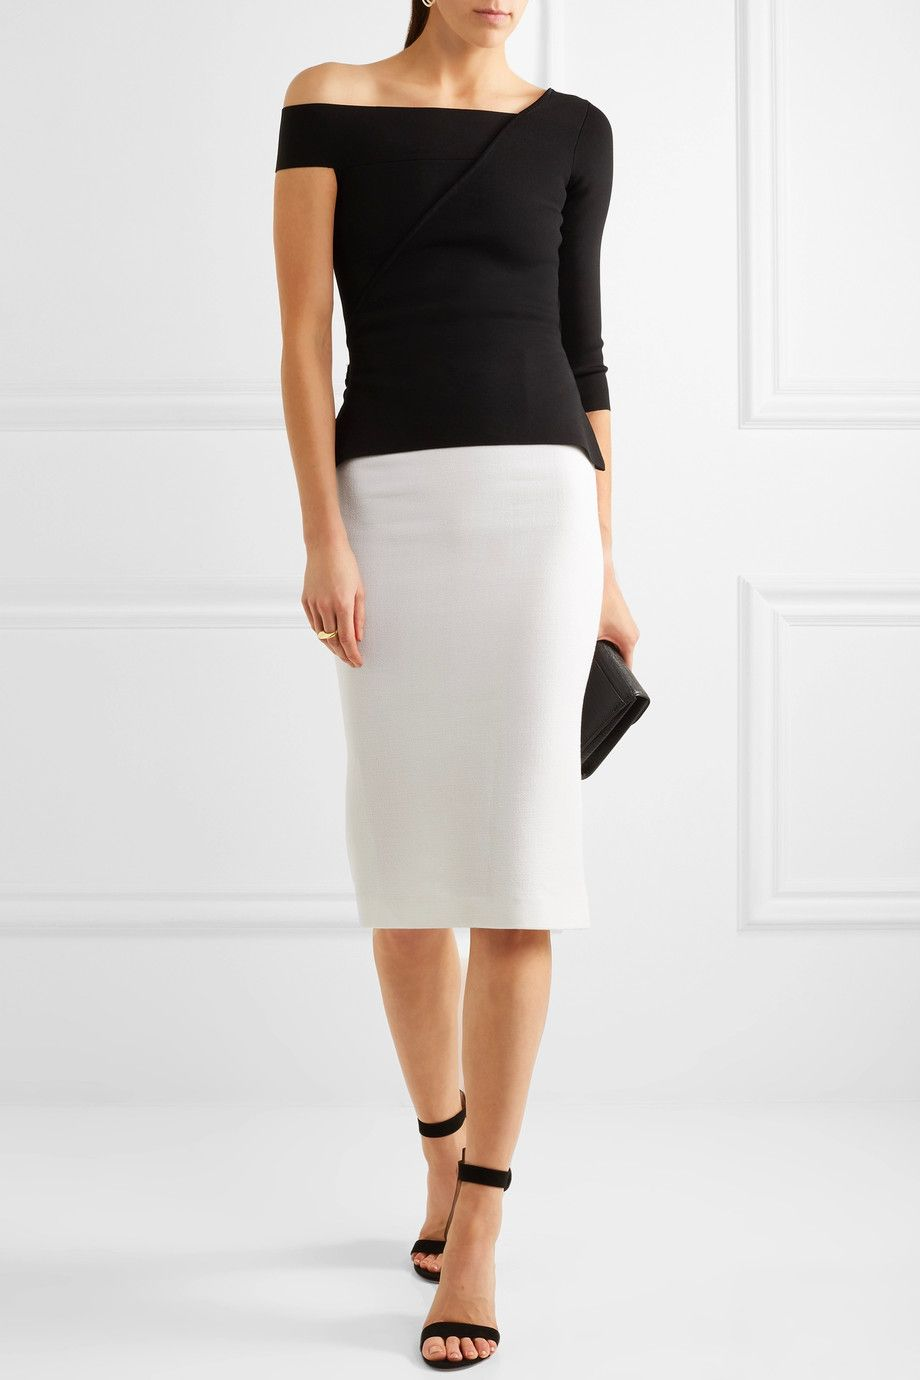 ac7da57705 Roland Mouret - Arreton wool-crepe pencil skirt | Fashion Lust ...